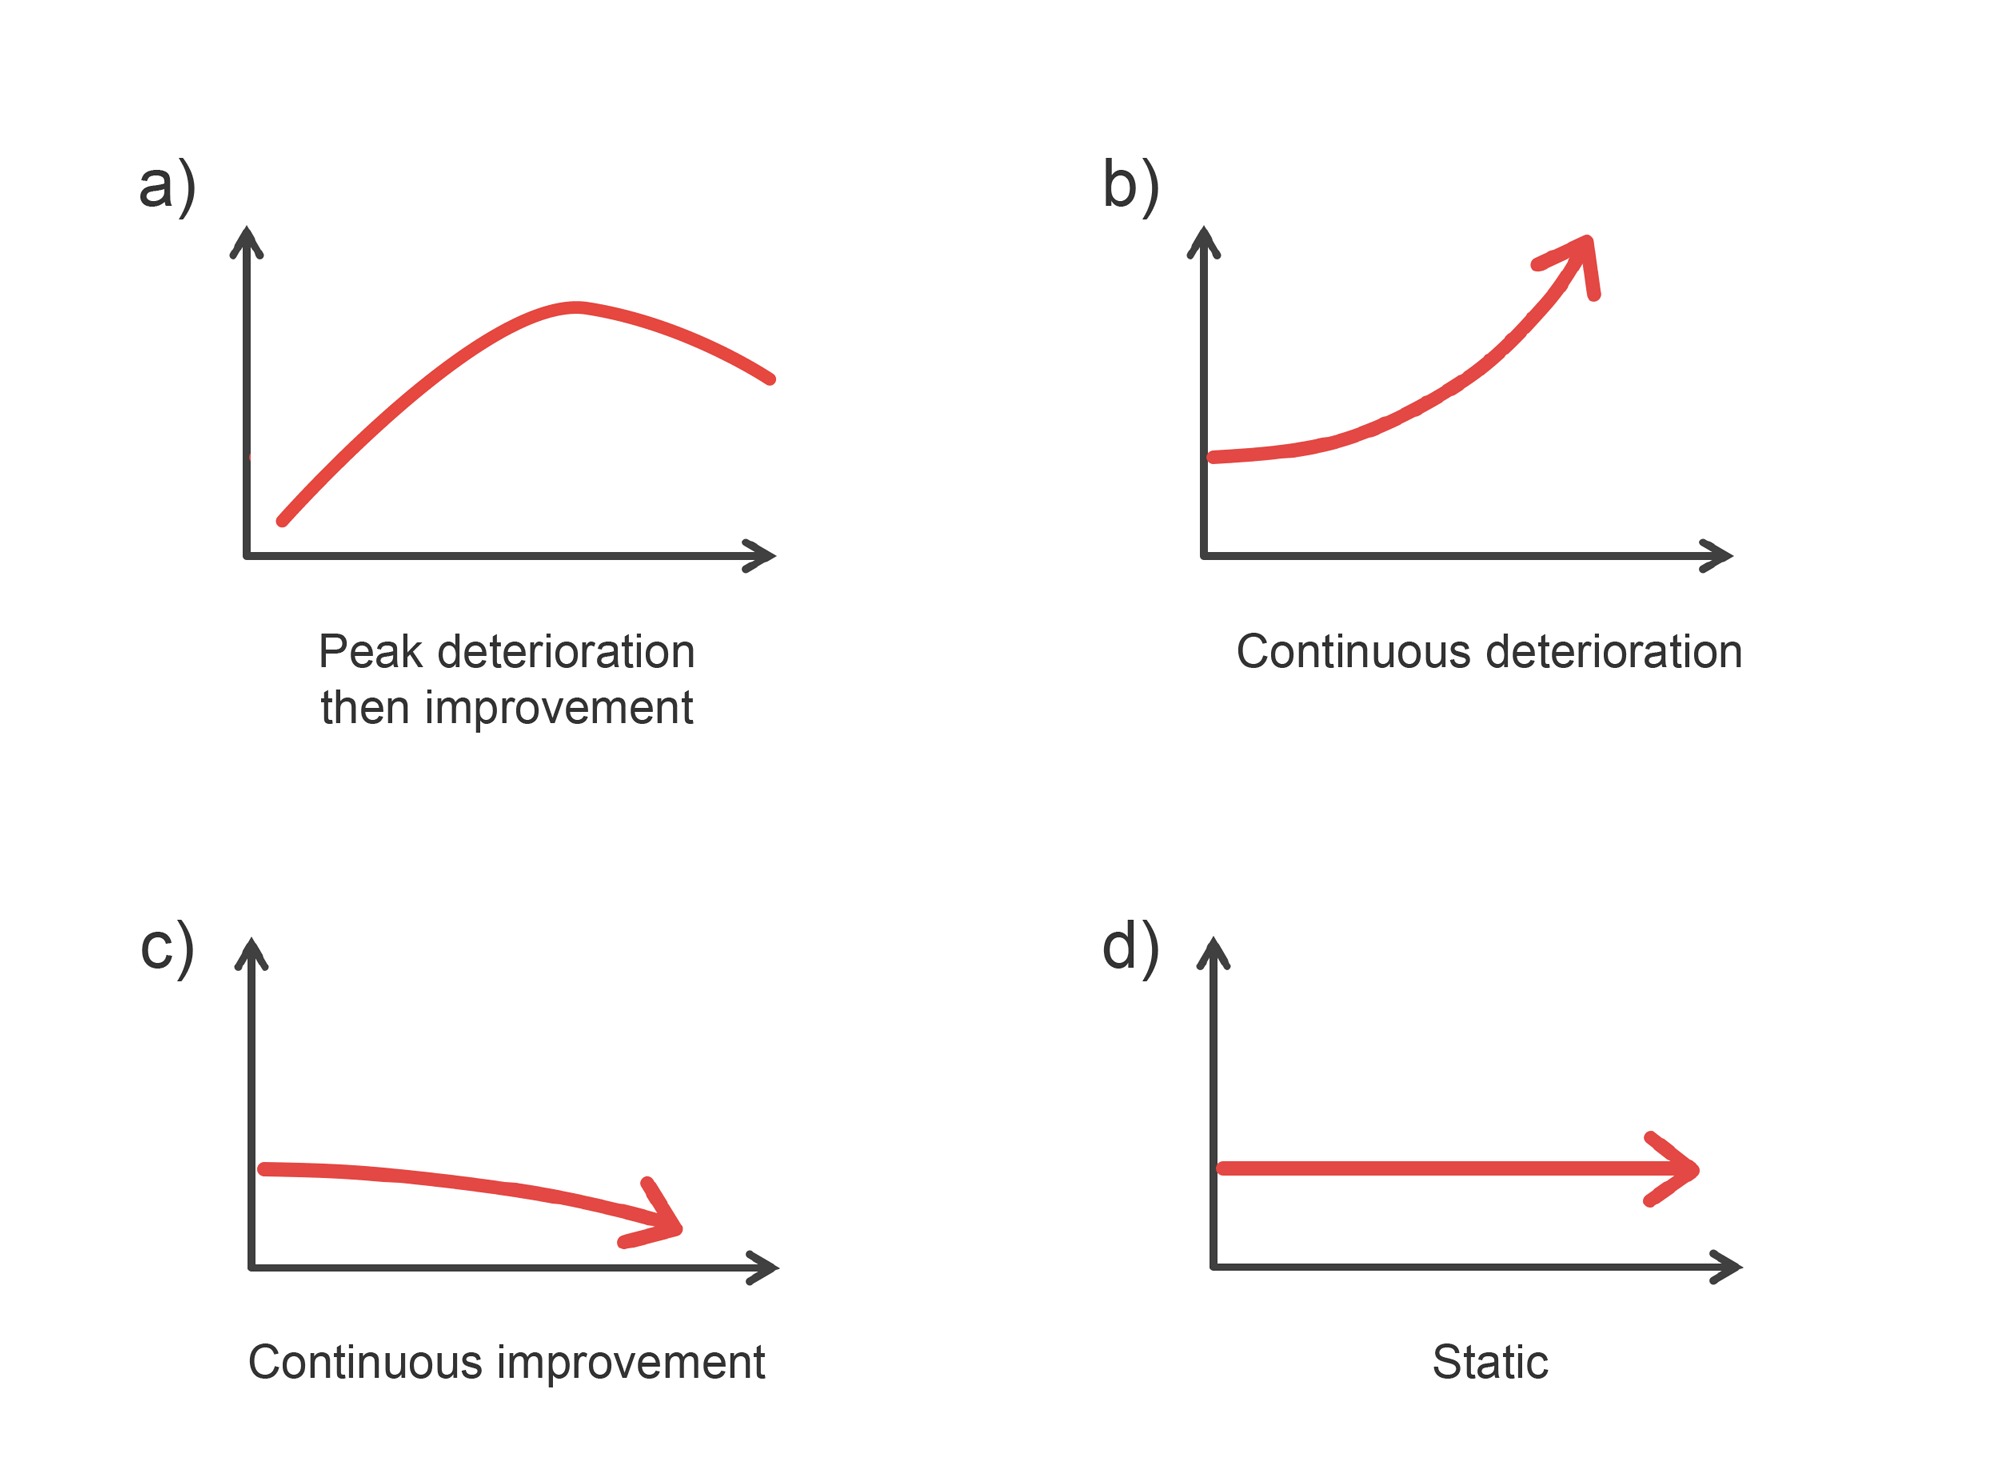 Graphs depicting patterns of CT changes over time in patients with COVID-19. Peak deterioration then improvement. Continuous deterioration. Continuous improvement. Static. Illustration.